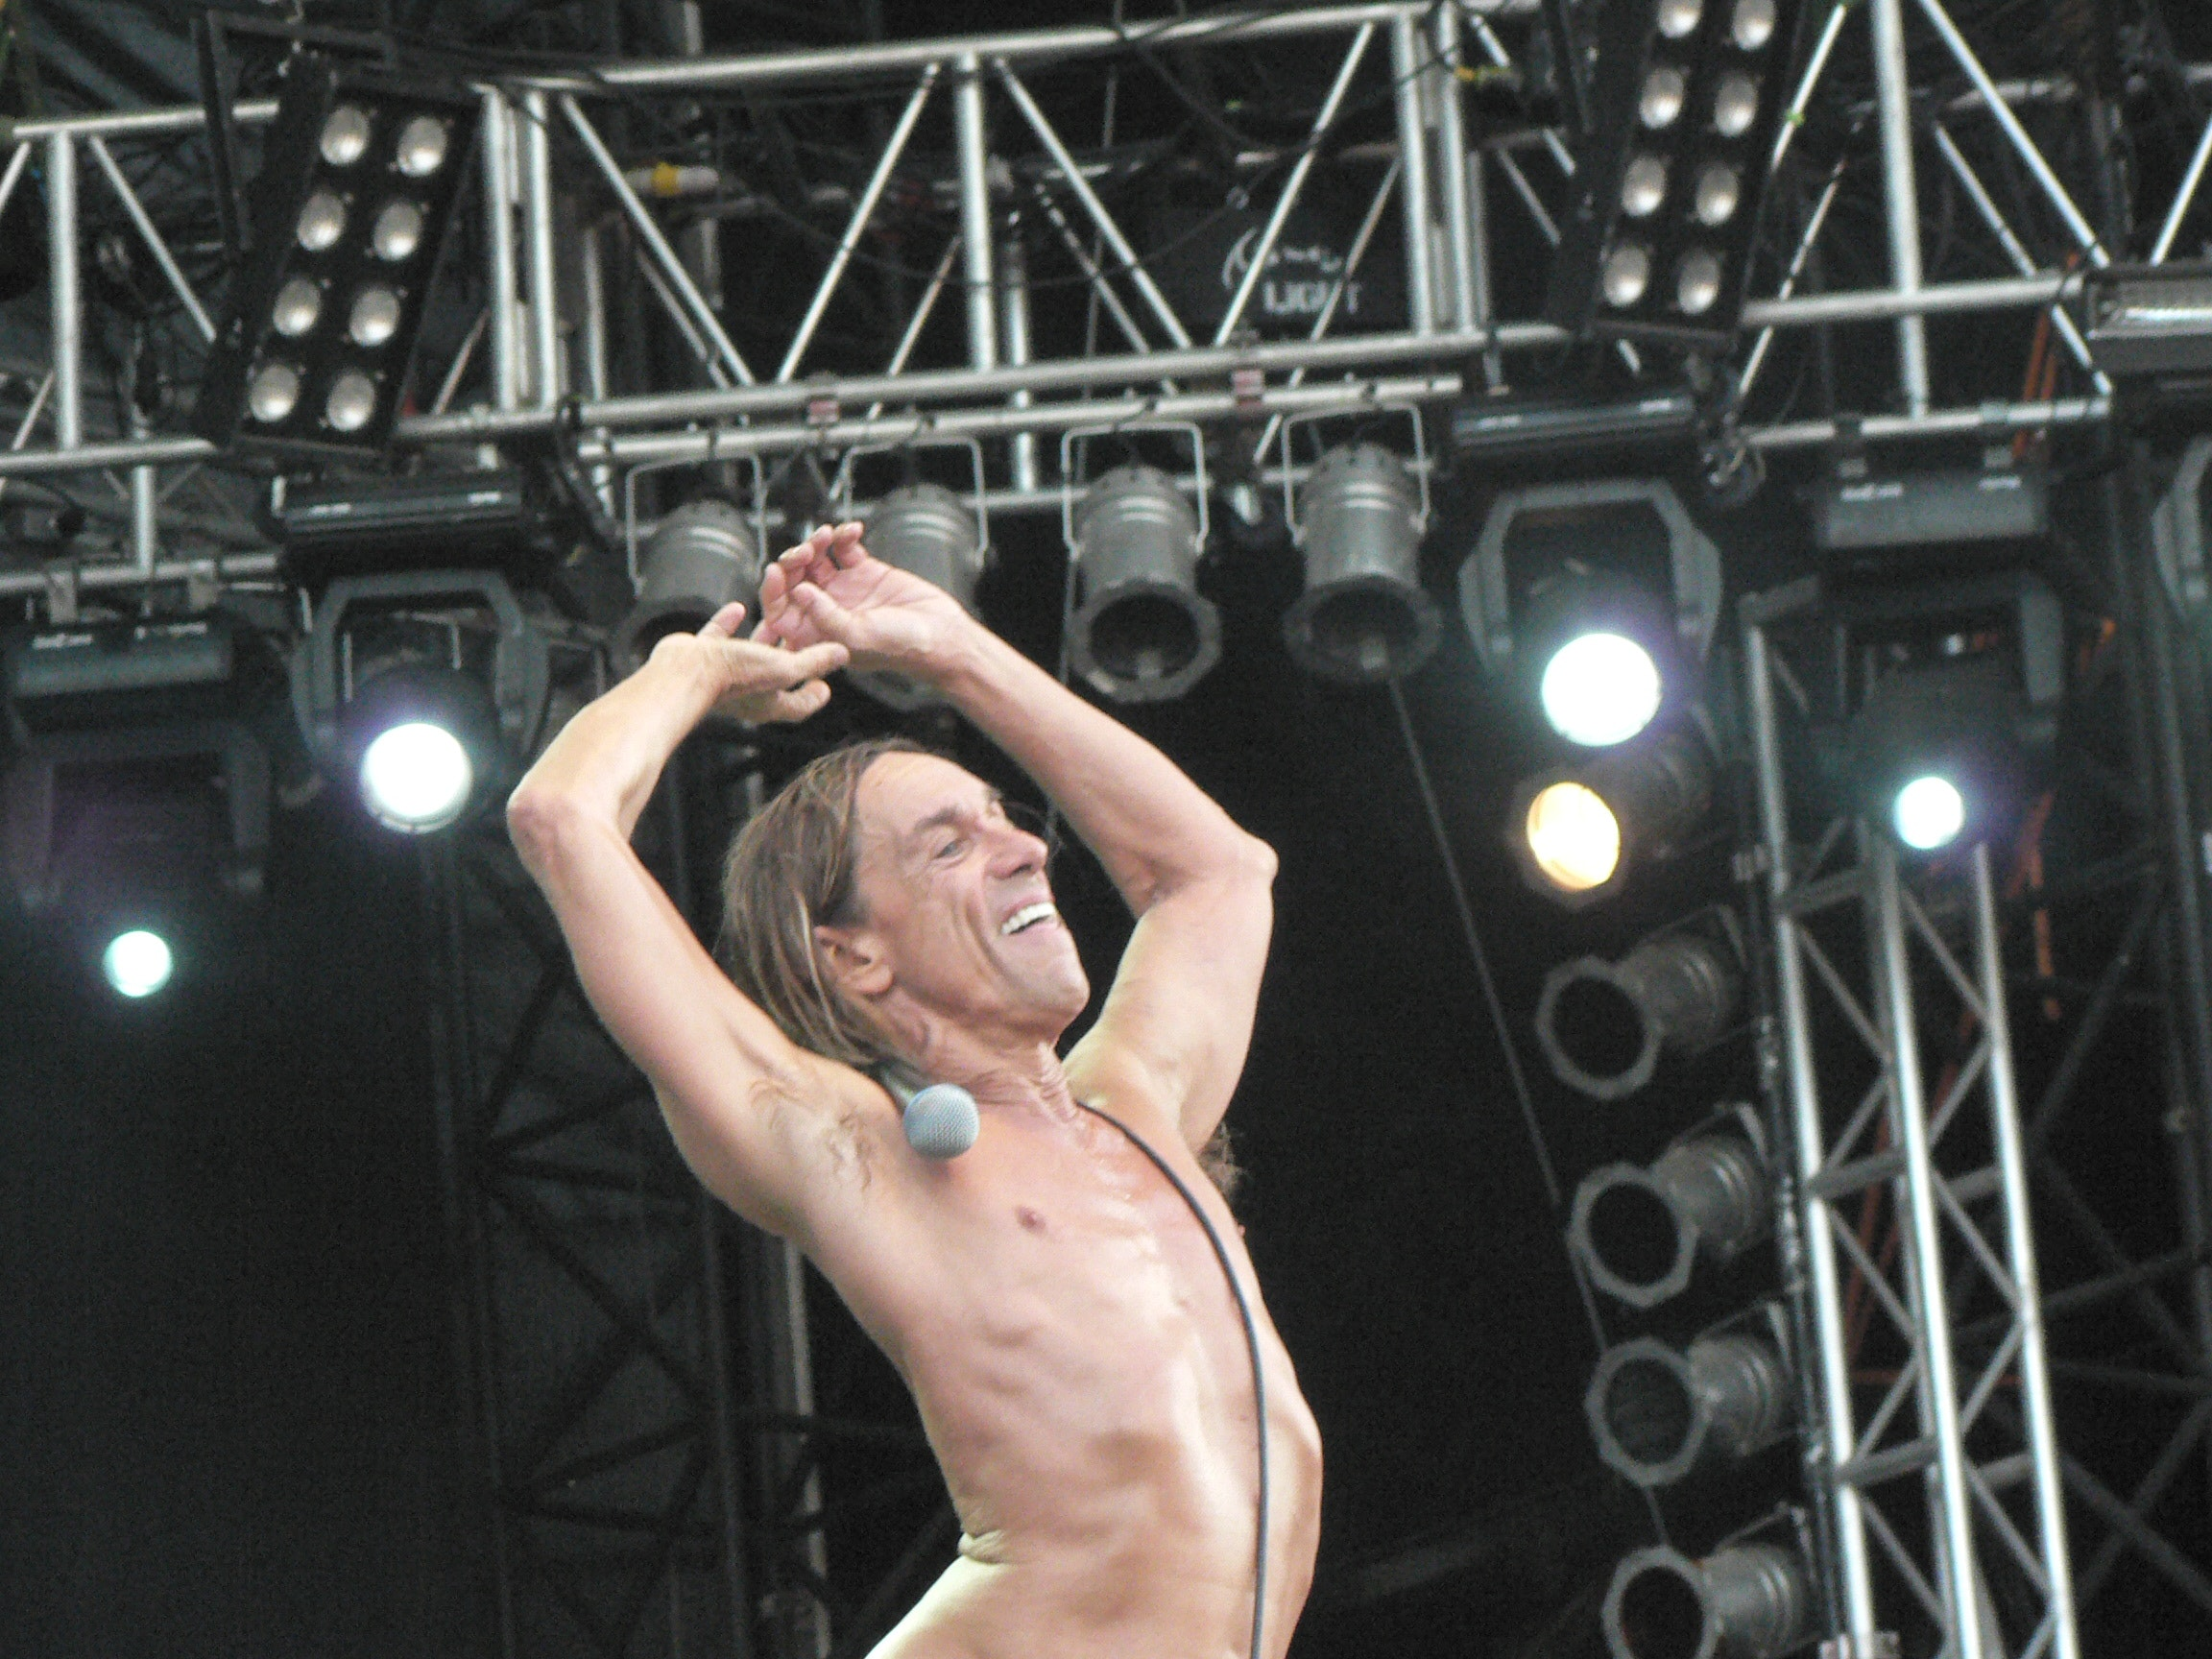 68-year-old Iggy Pop did not hesitate to become a nude model 03/01/2016 15